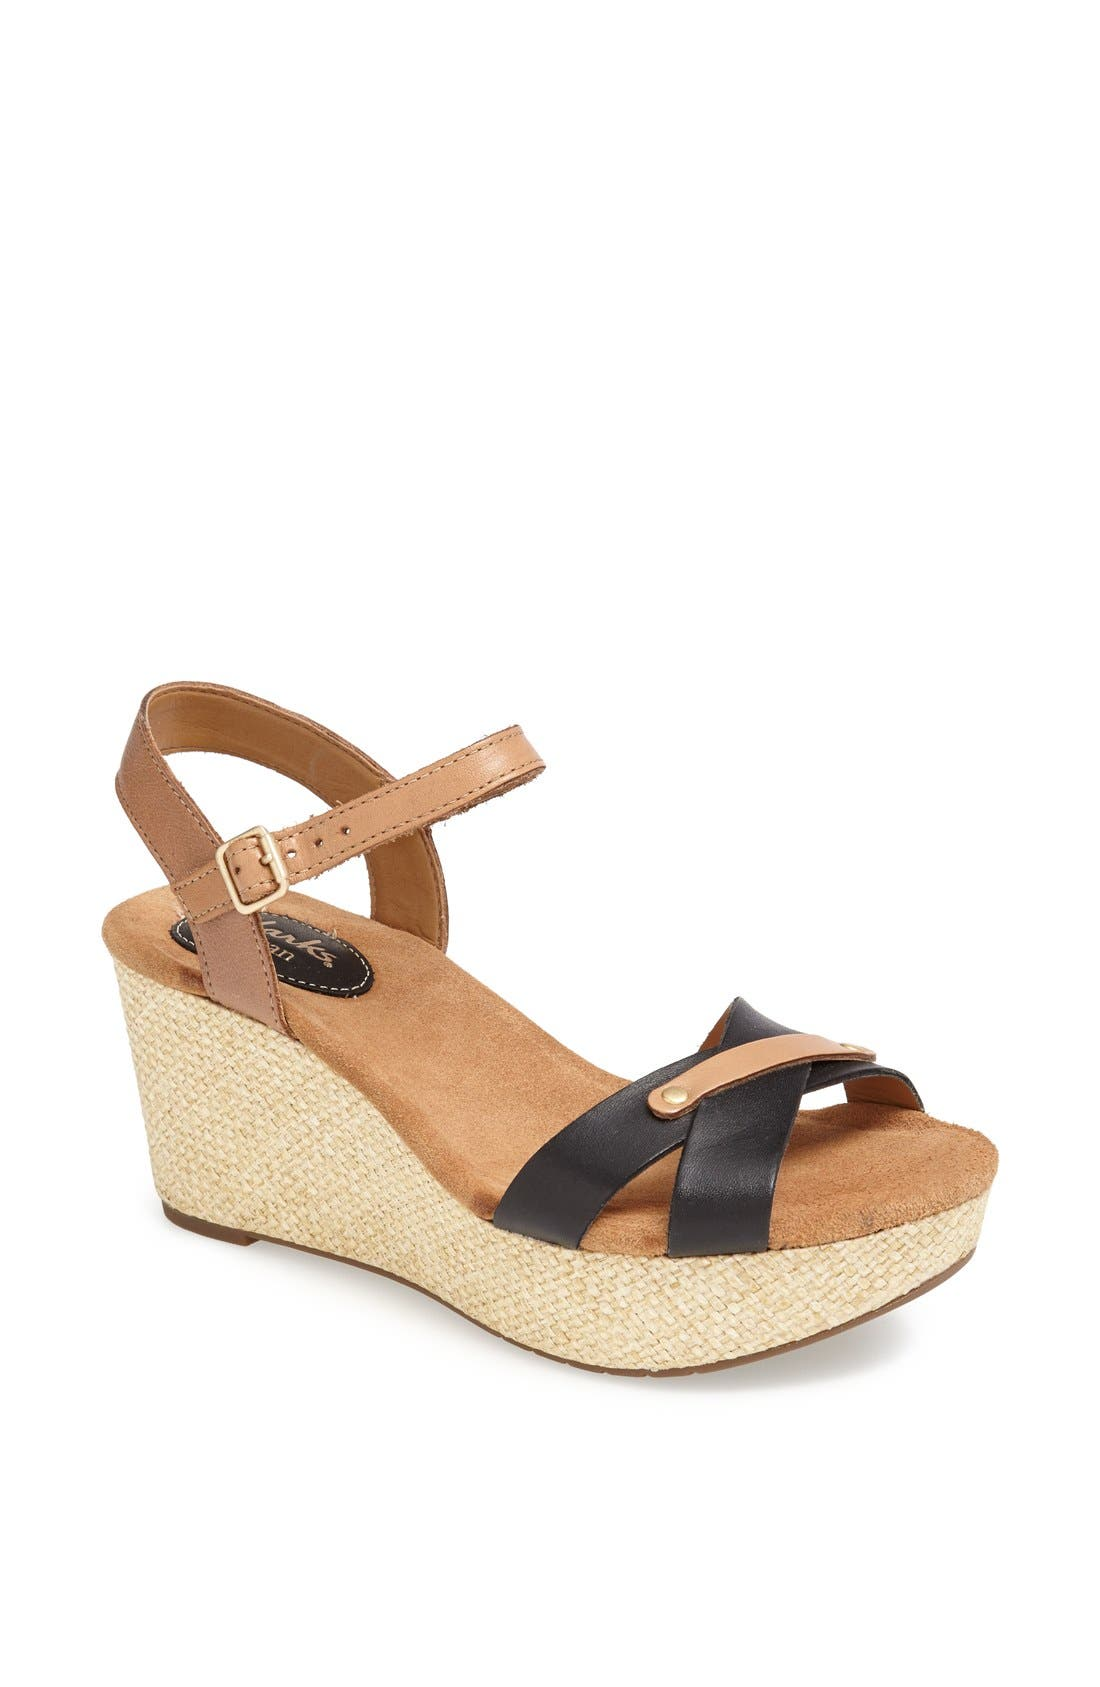 Alternate Image 1 Selected - Clarks® 'Caslynn Regina' Sandal